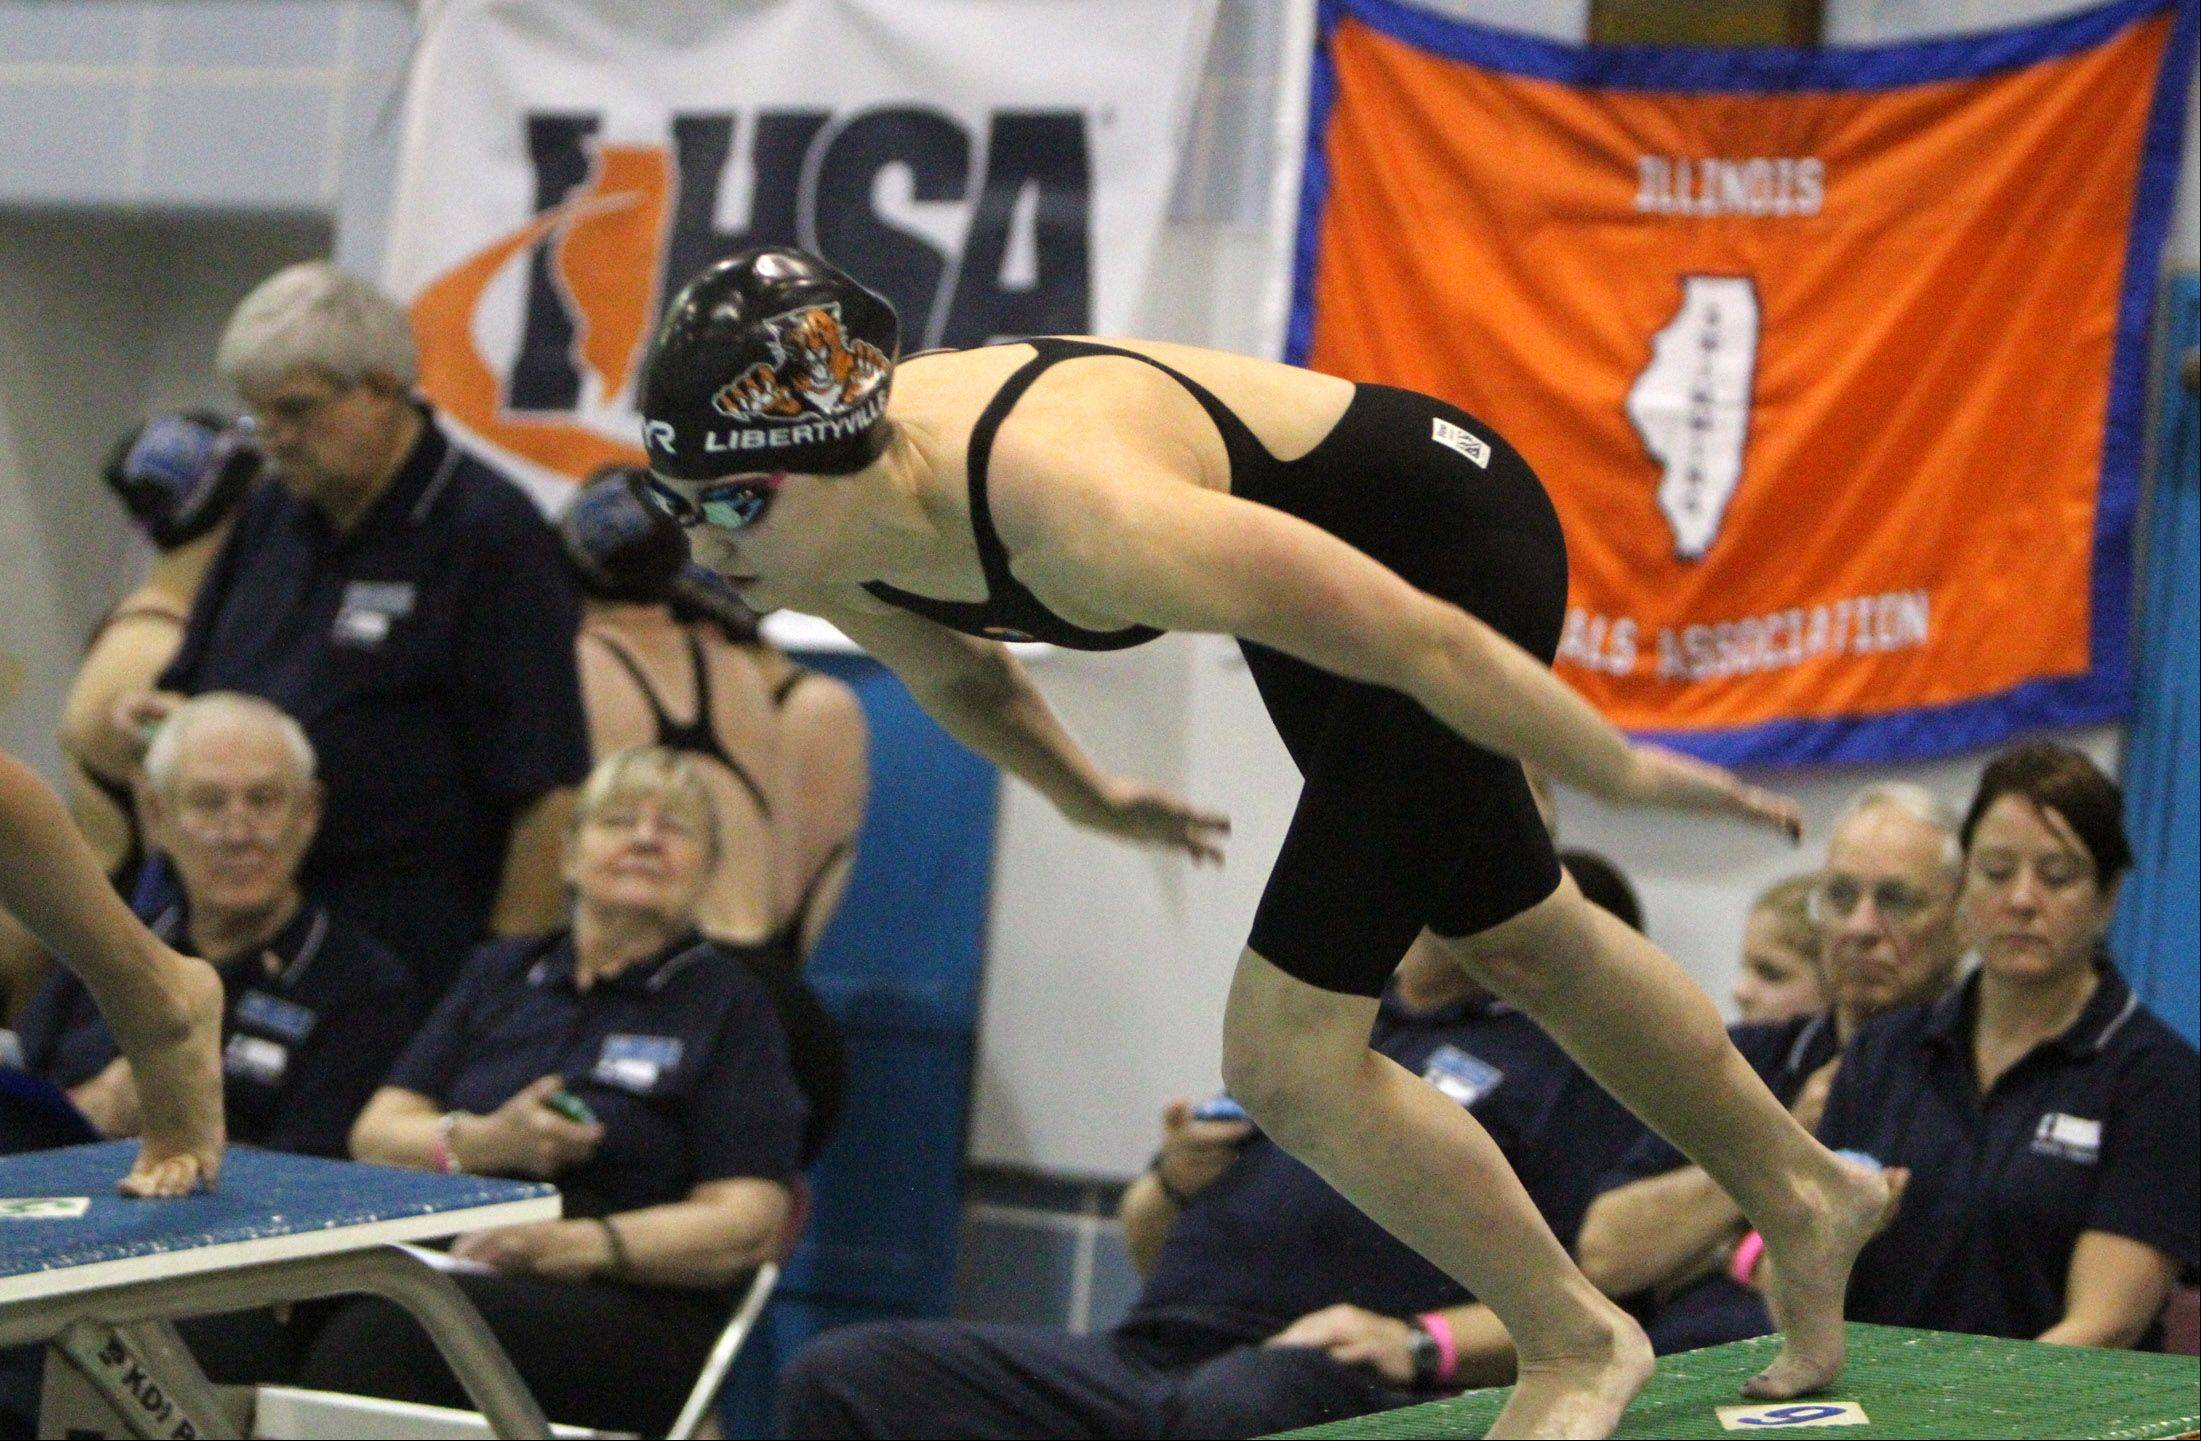 Libertyville's Morgan Dickson finished third in the 500-yard freestyle with a time of 4:55.64 minutes.